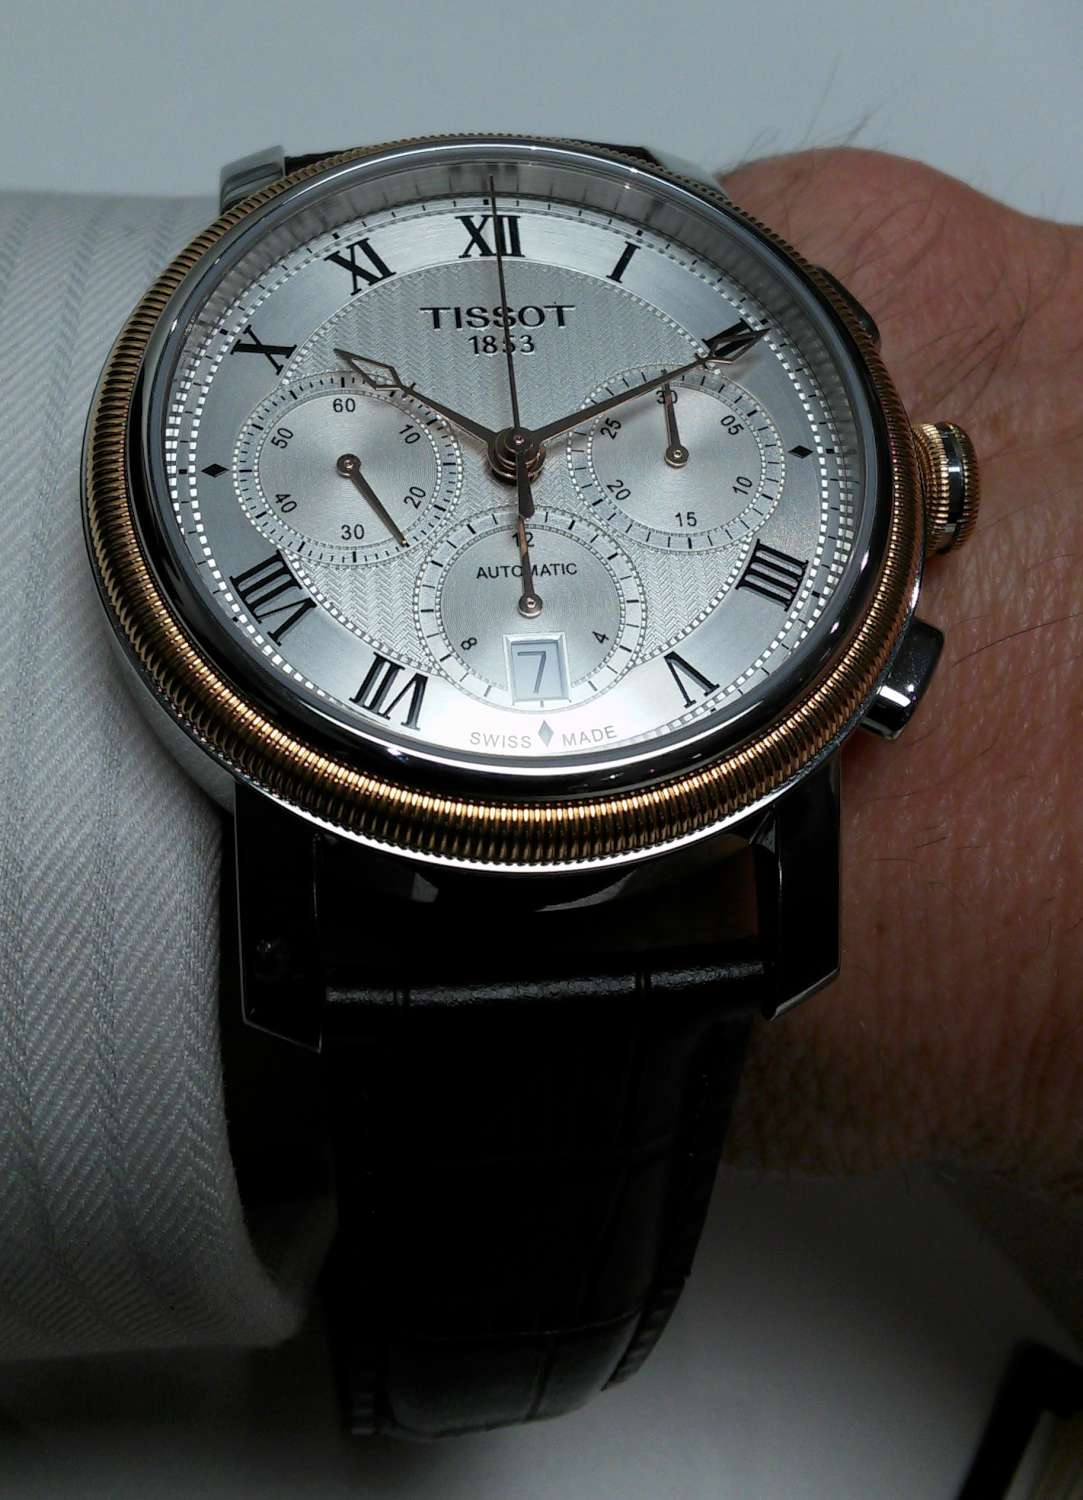 bridgeport_chrono_on_wrist-1500